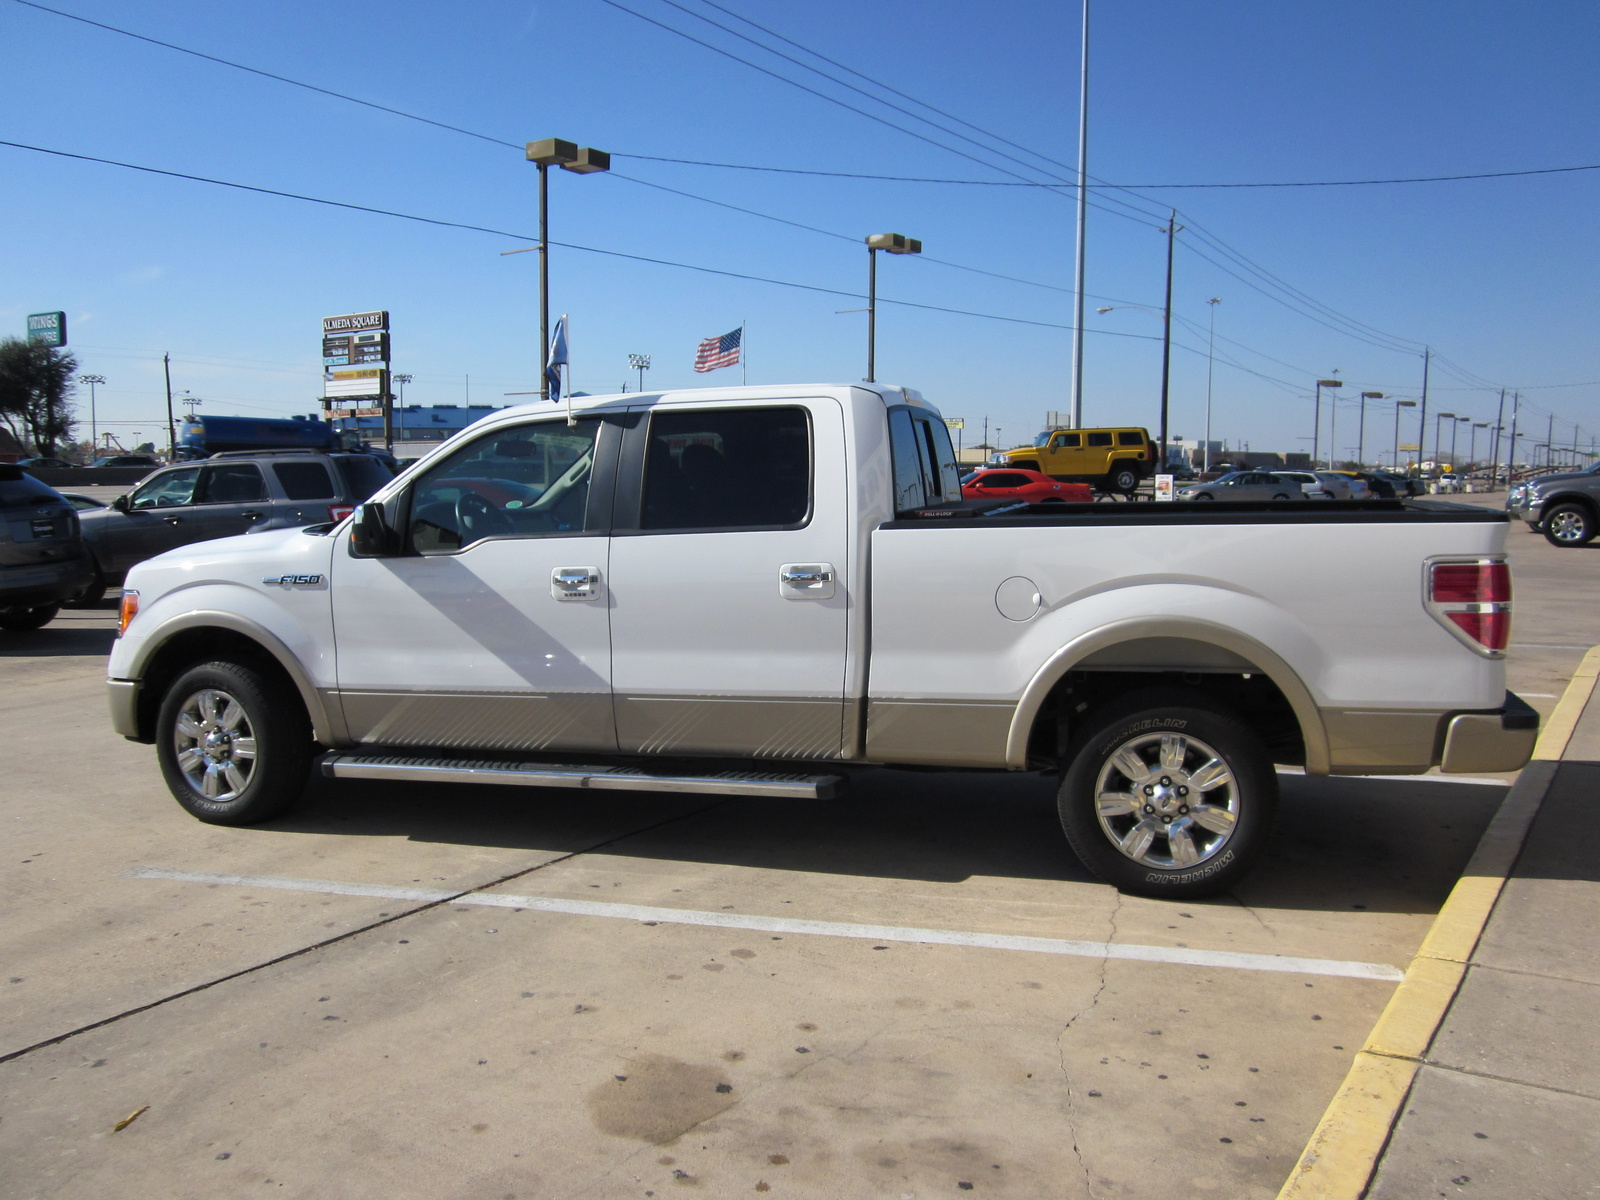 Ford F 150 Lariat SuperCrew picture 9 reviews news